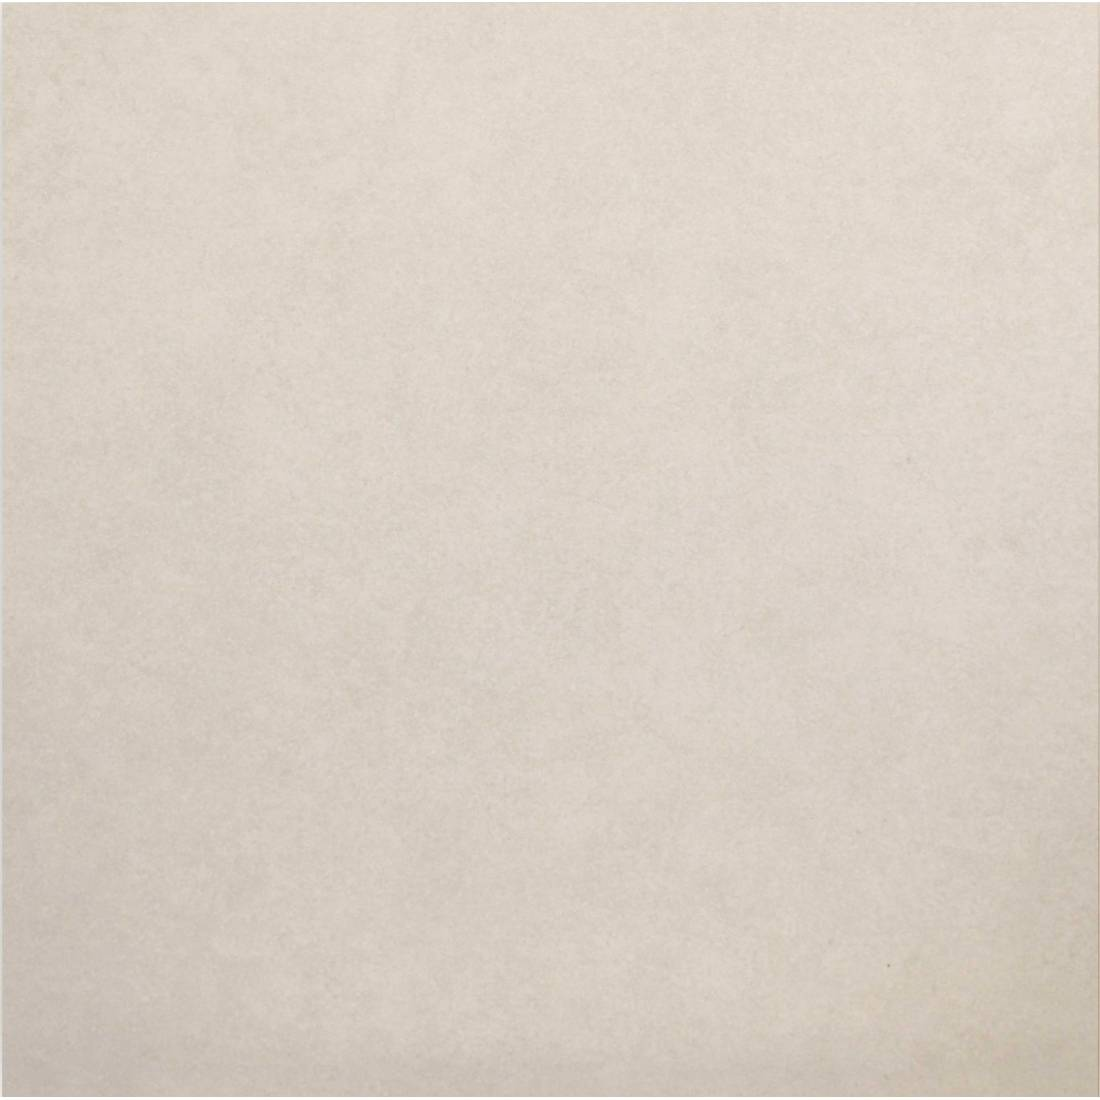 Solid 80x80 White R9 1